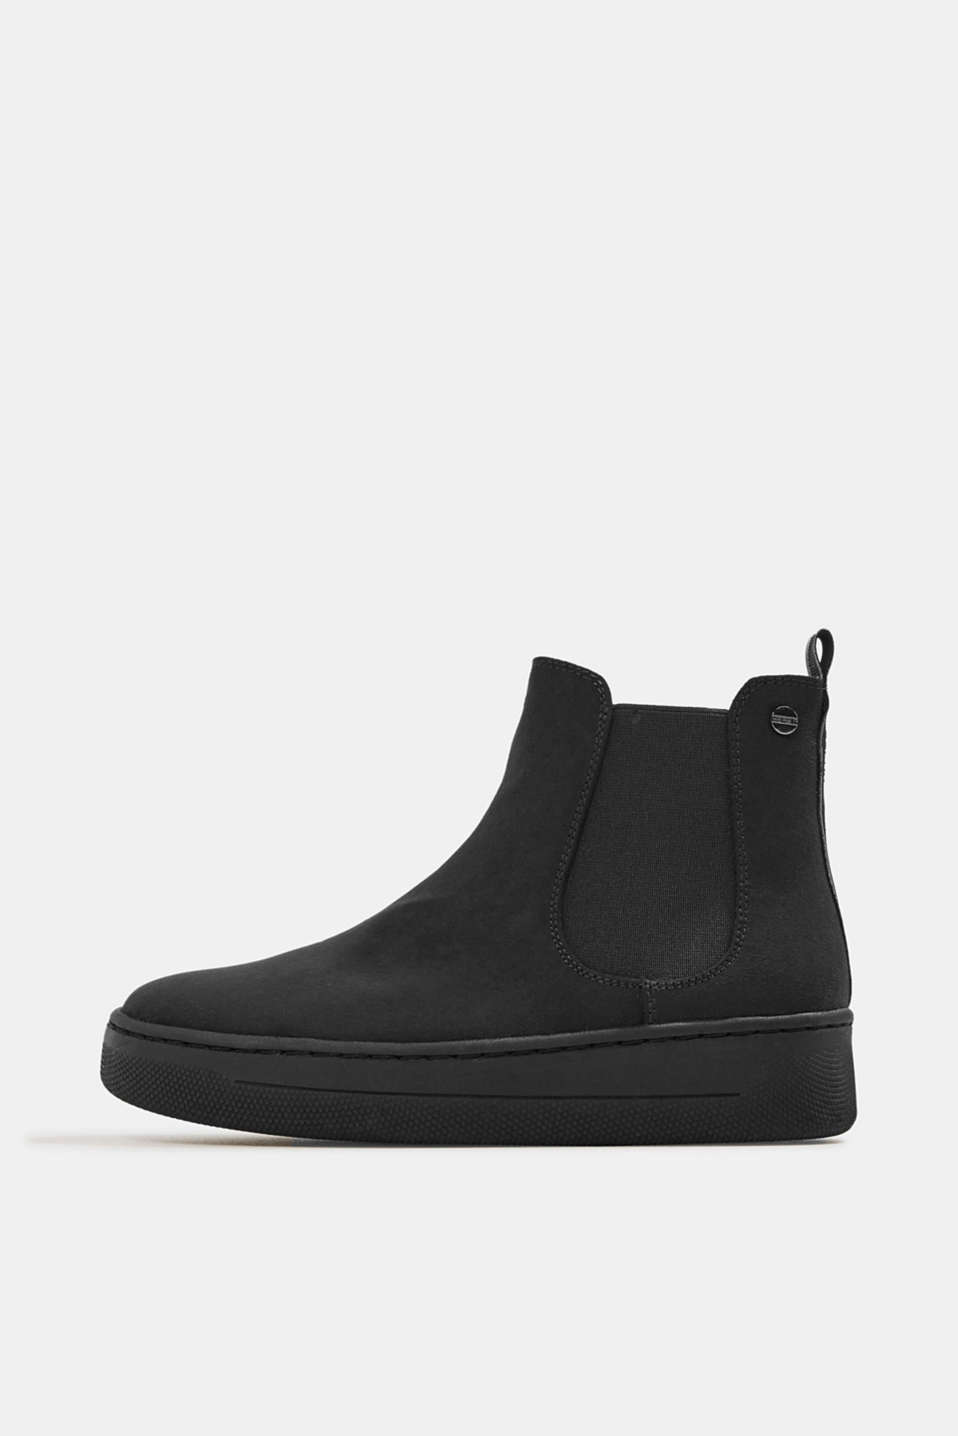 Esprit - Chelsea Boots in Veloursleder-Optik